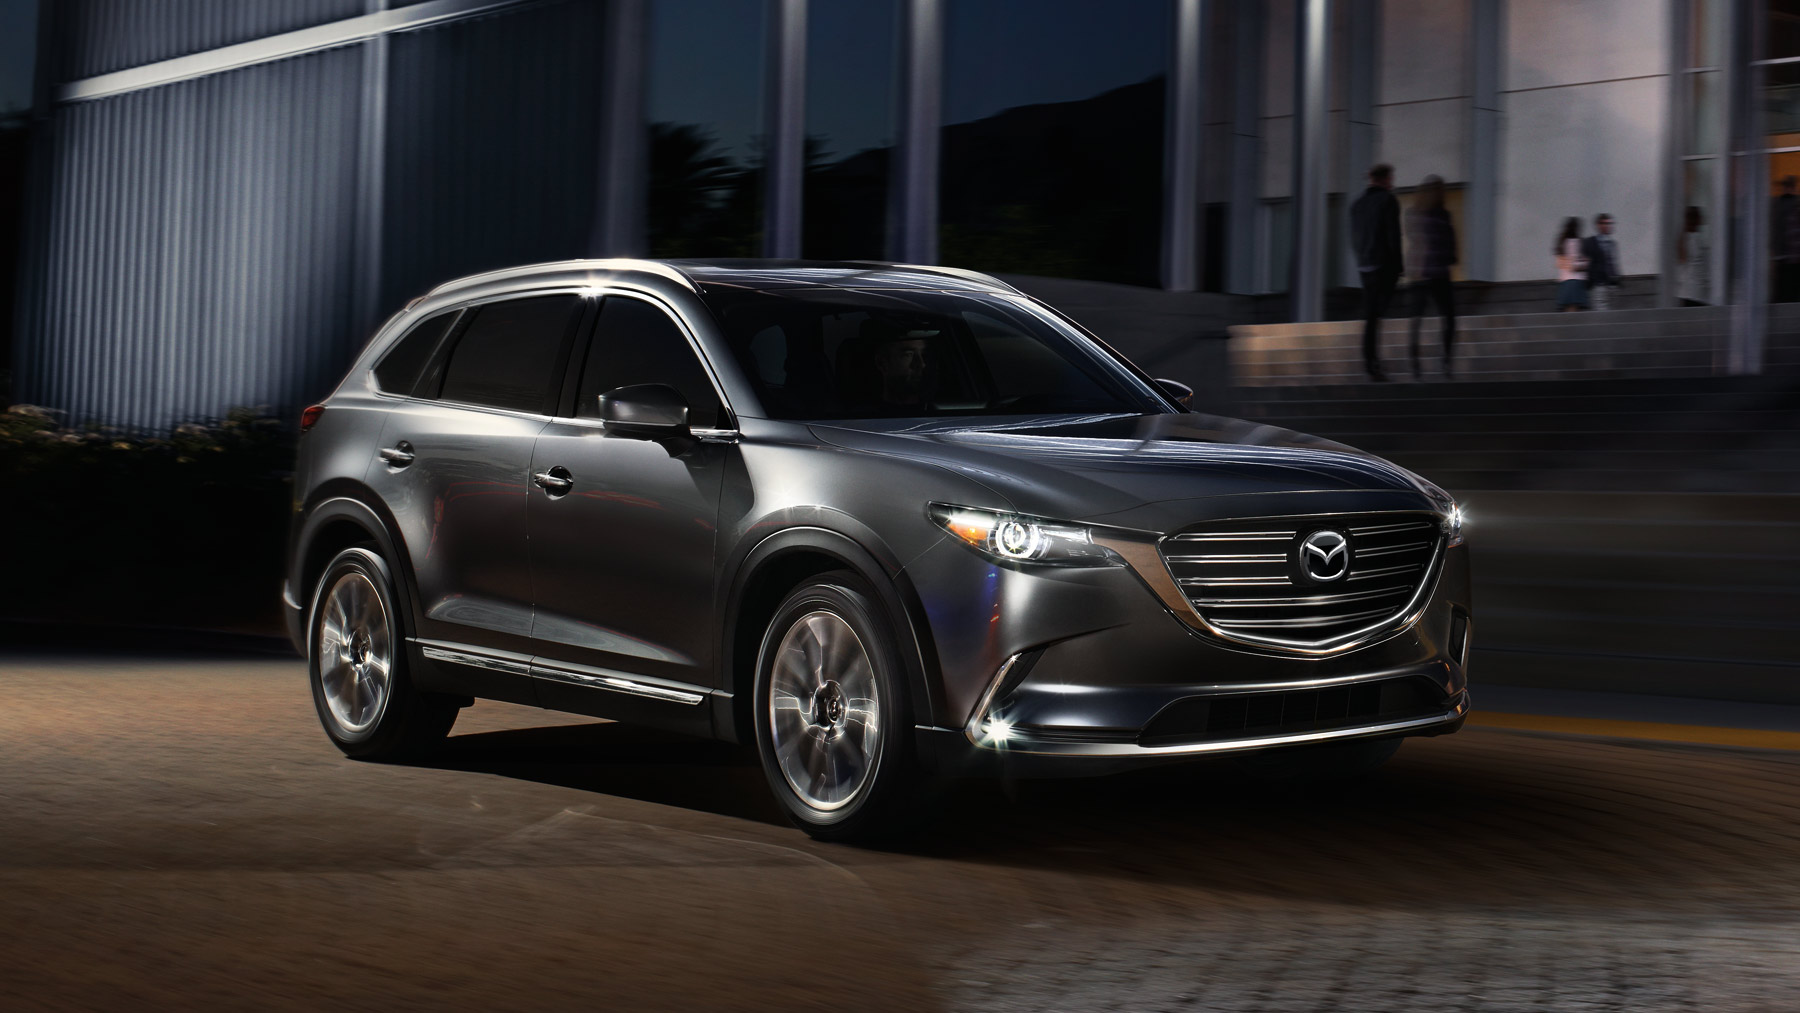 new 2017 mazda cx 9 for sale near fort worth tx hiley mazda. Black Bedroom Furniture Sets. Home Design Ideas